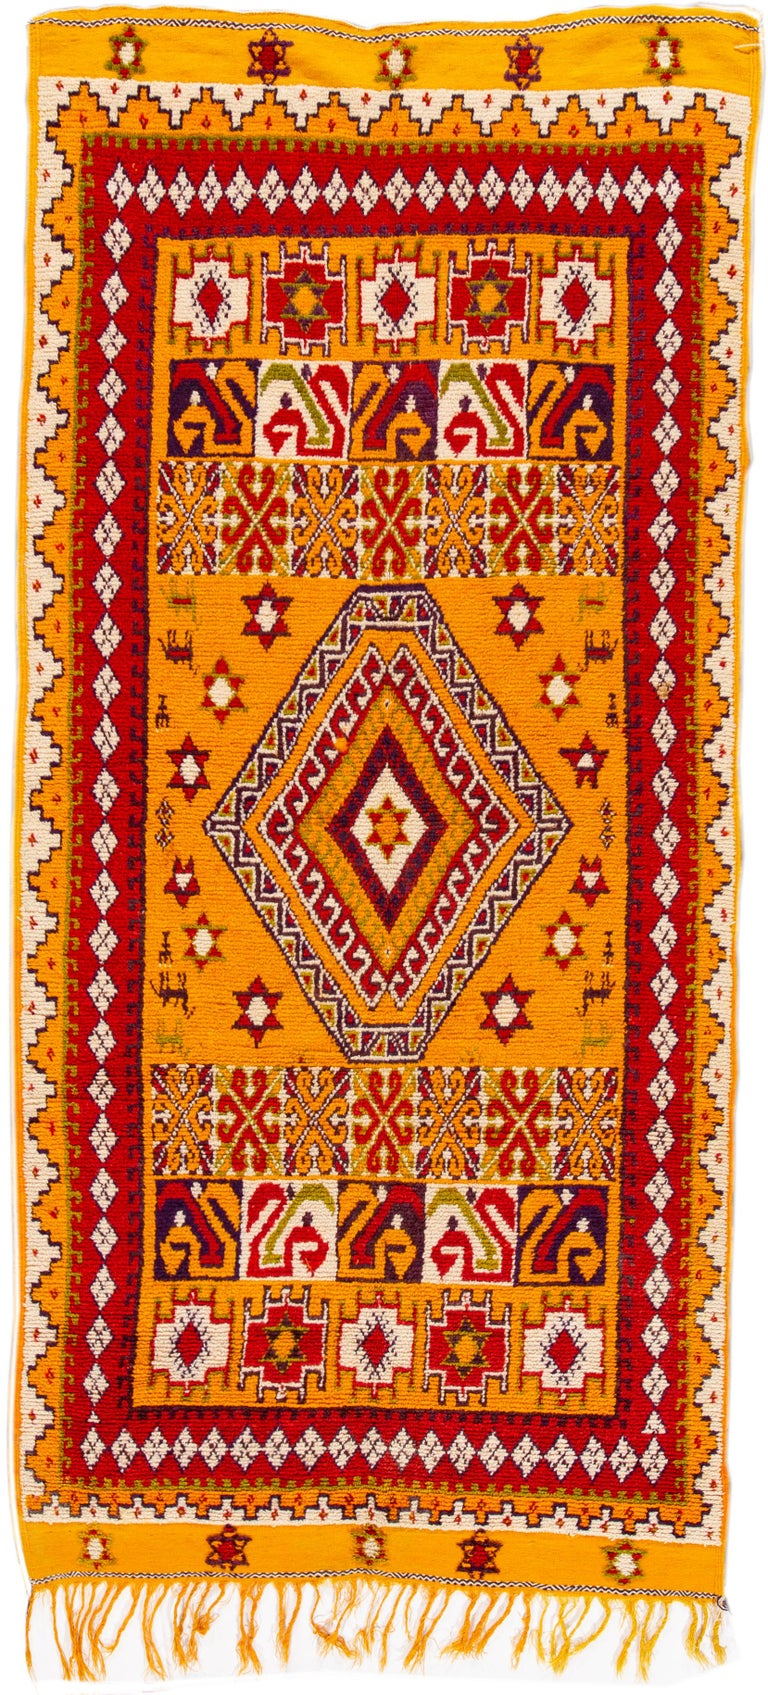 Hand-knotted Moroccan rug with orange and red tribal design. This rug measures approximately 8 feet 9 inches by 13 feet 1 inch.